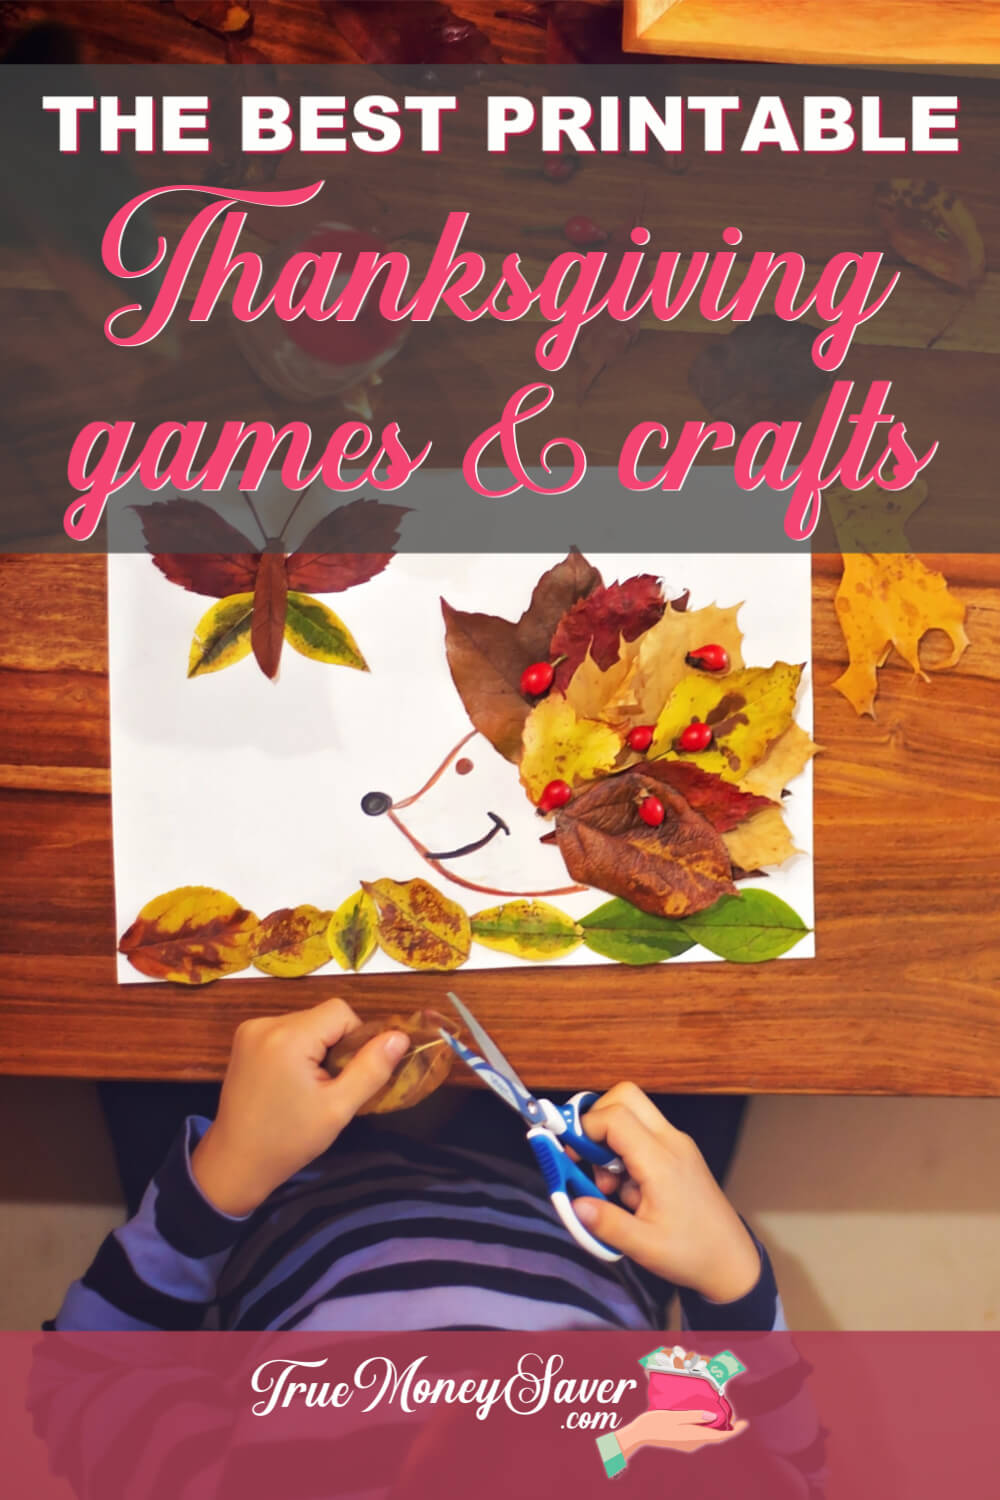 The Best Printable Thanksgiving Games & Crafts For More Fun